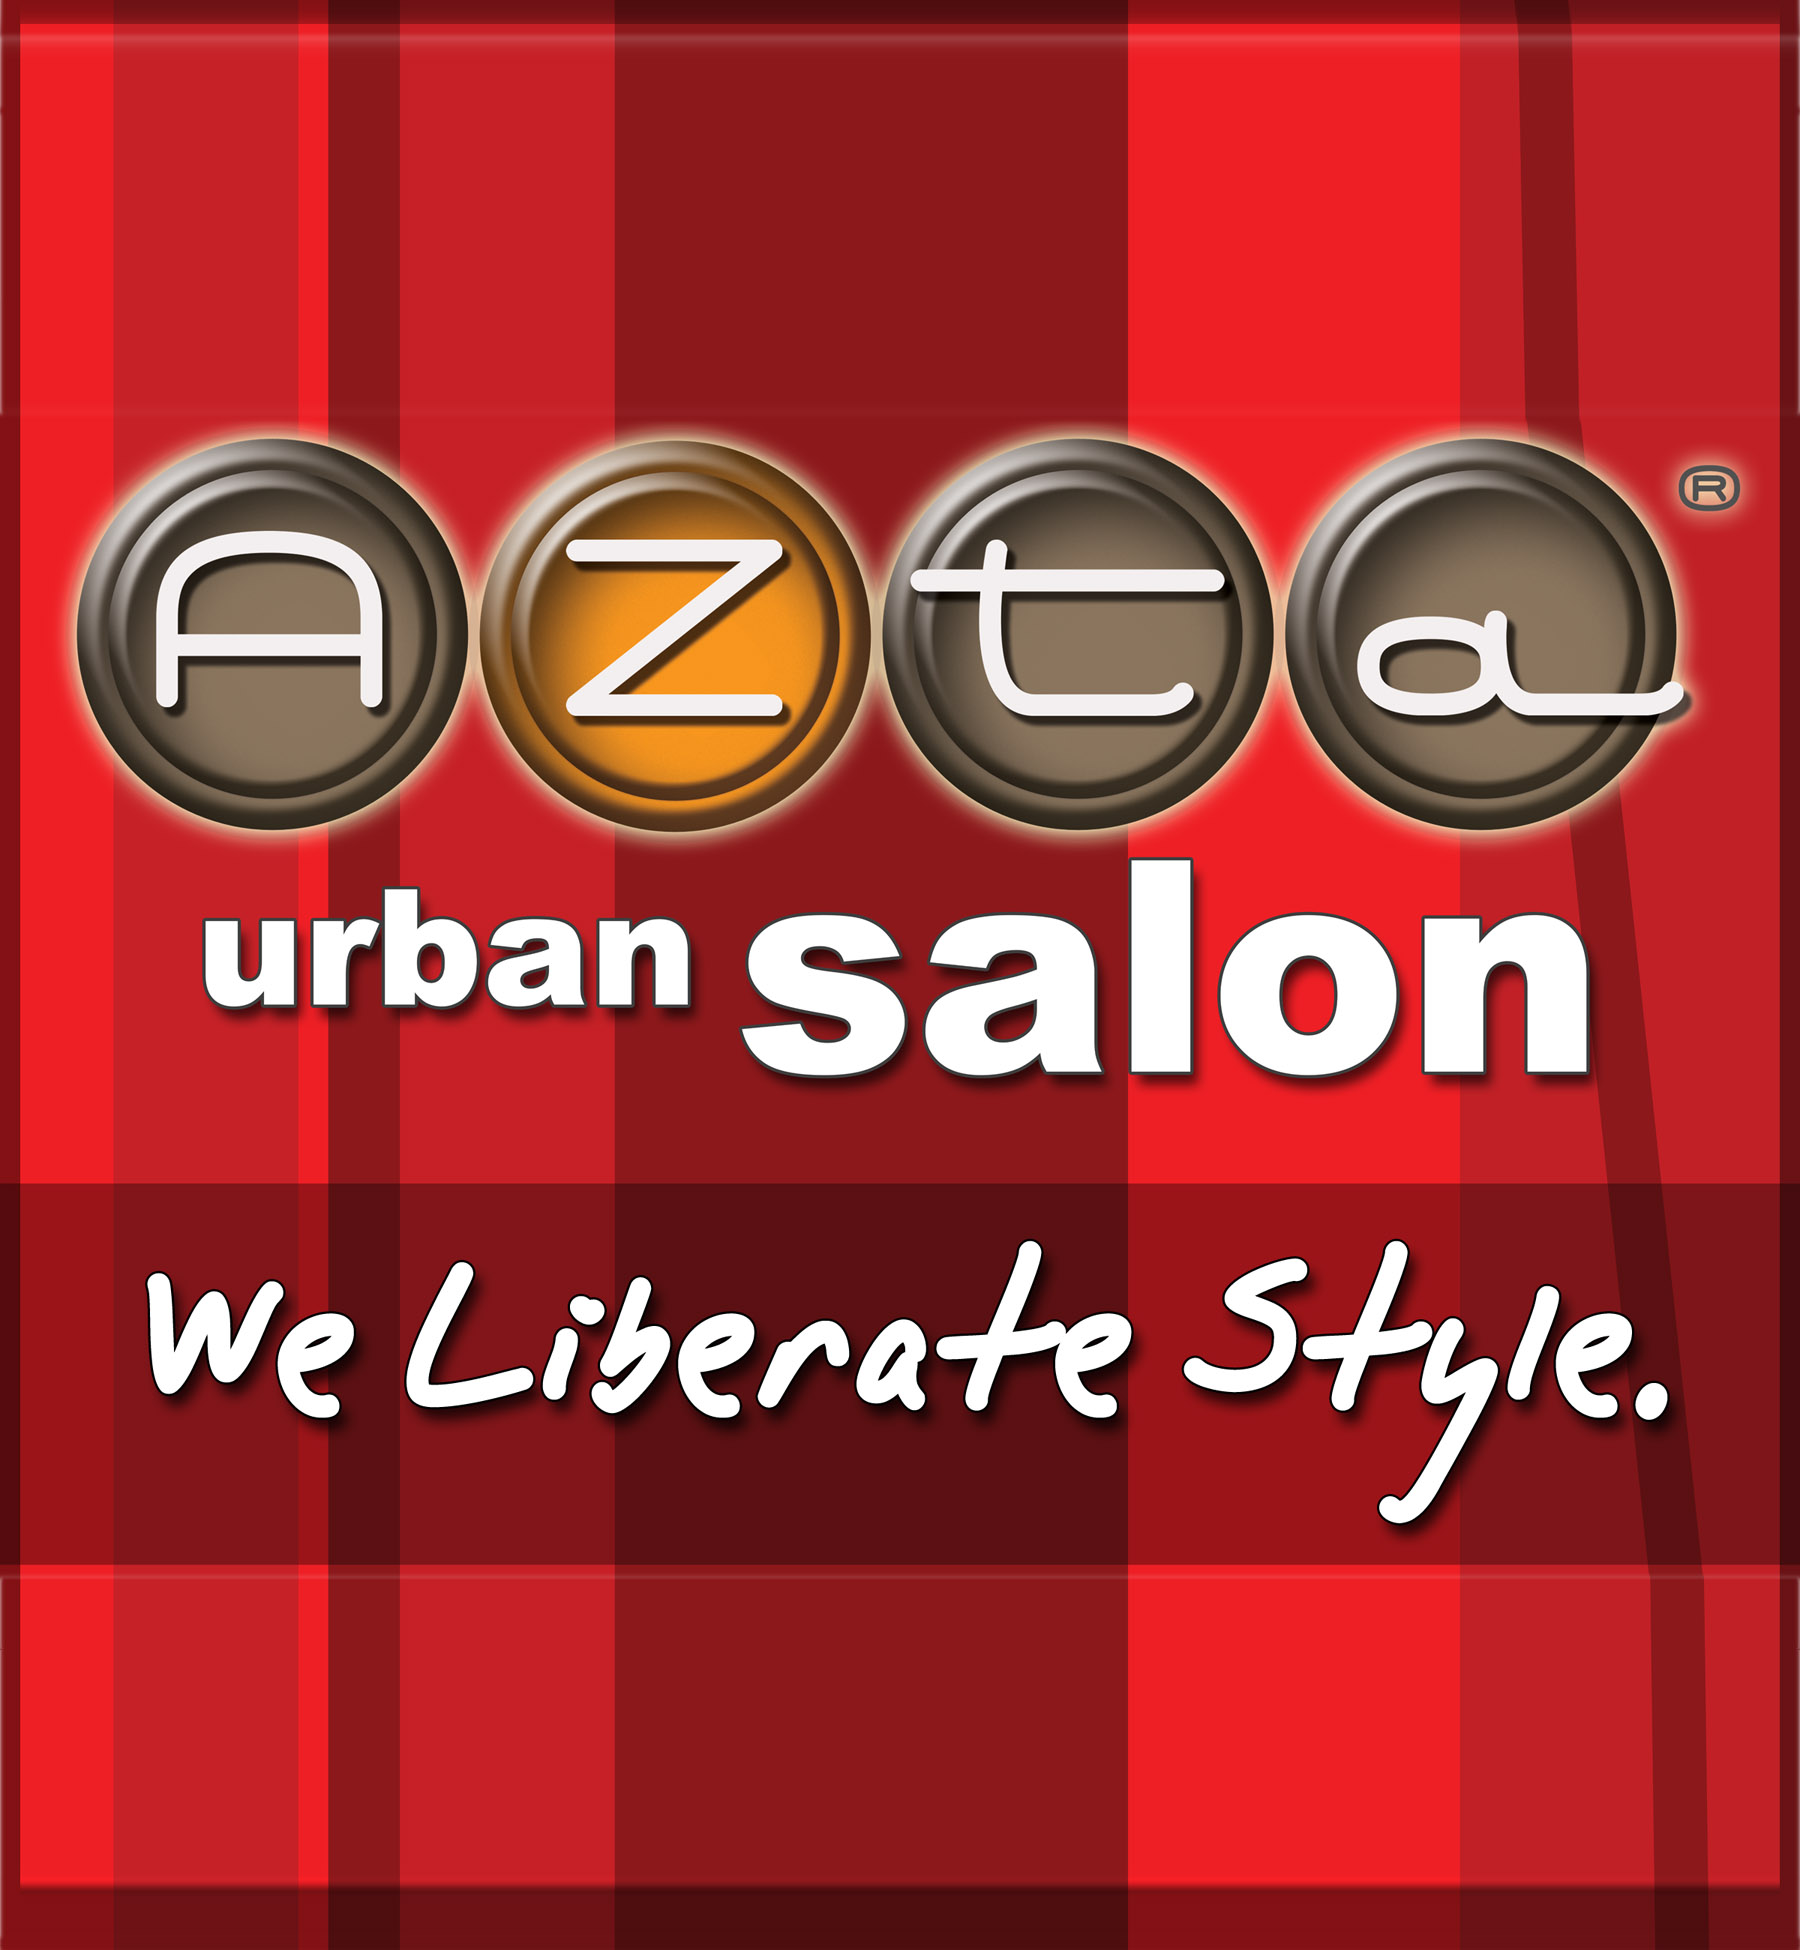 Azta Urban Salon (Gupit Industriya Inc.)